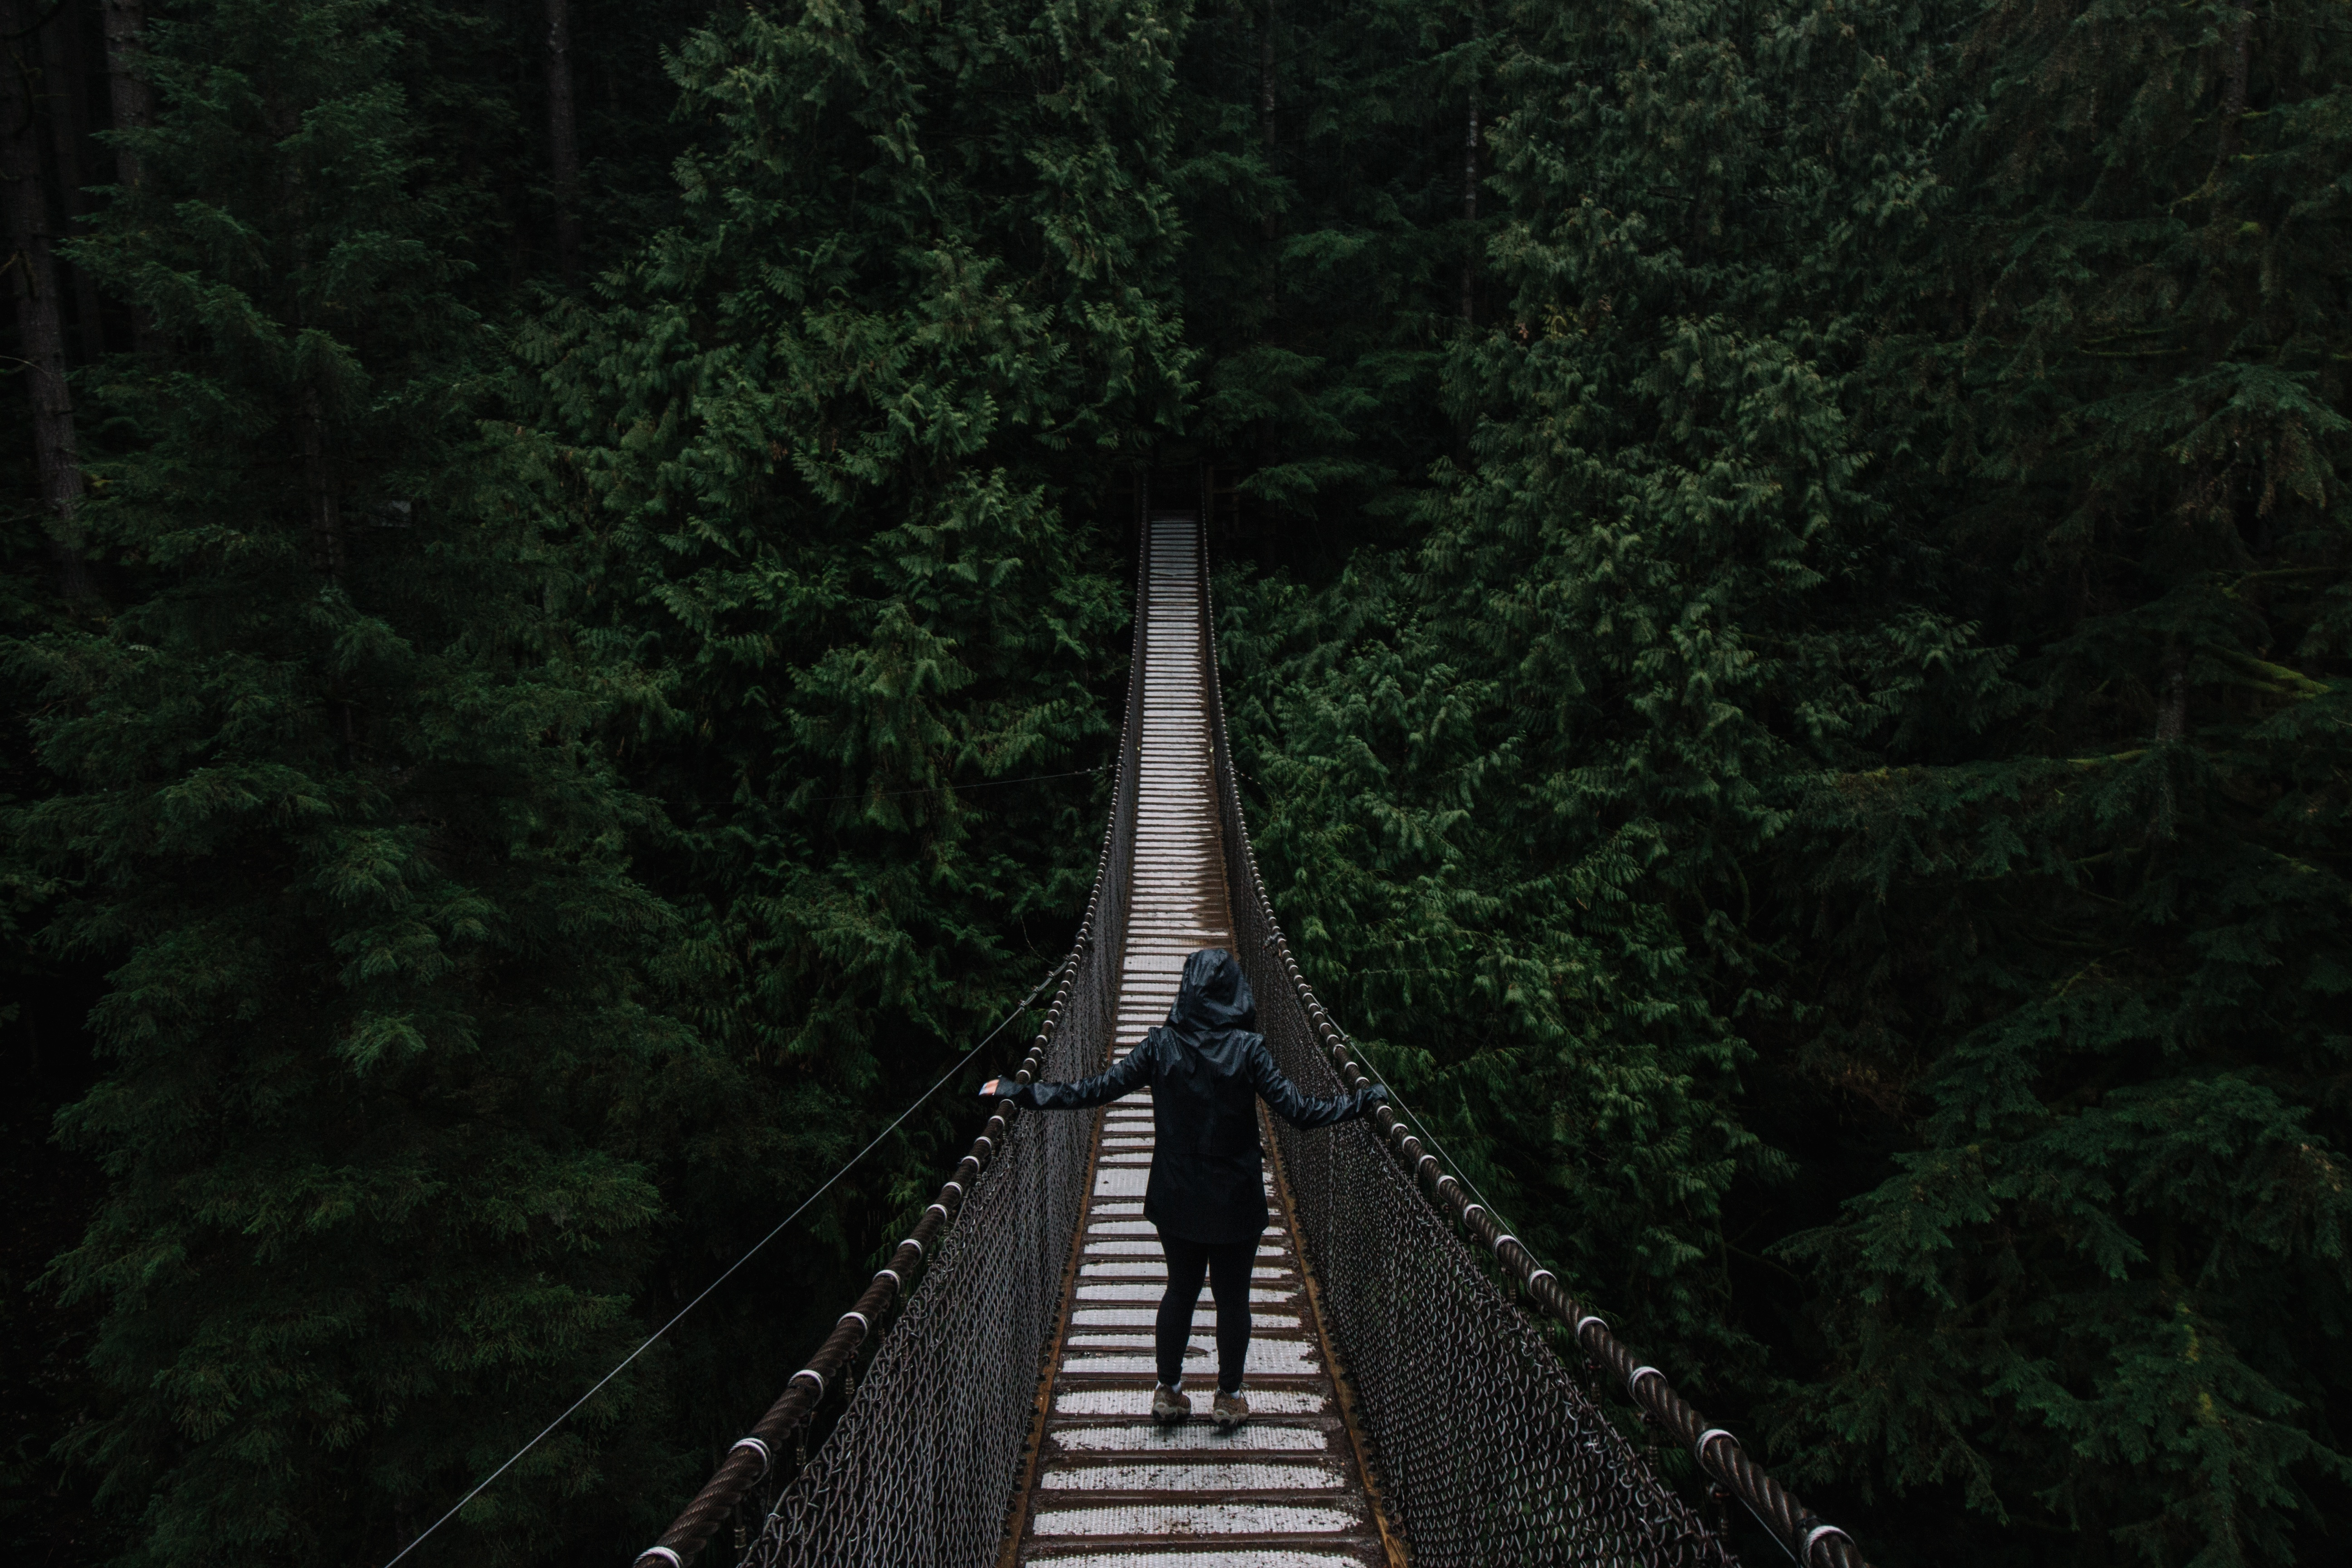 Free wallpaper 82832: Nature, Trees, Bridge, Suspension, Hanging, Human, Person, Loneliness download pictures for cellphone